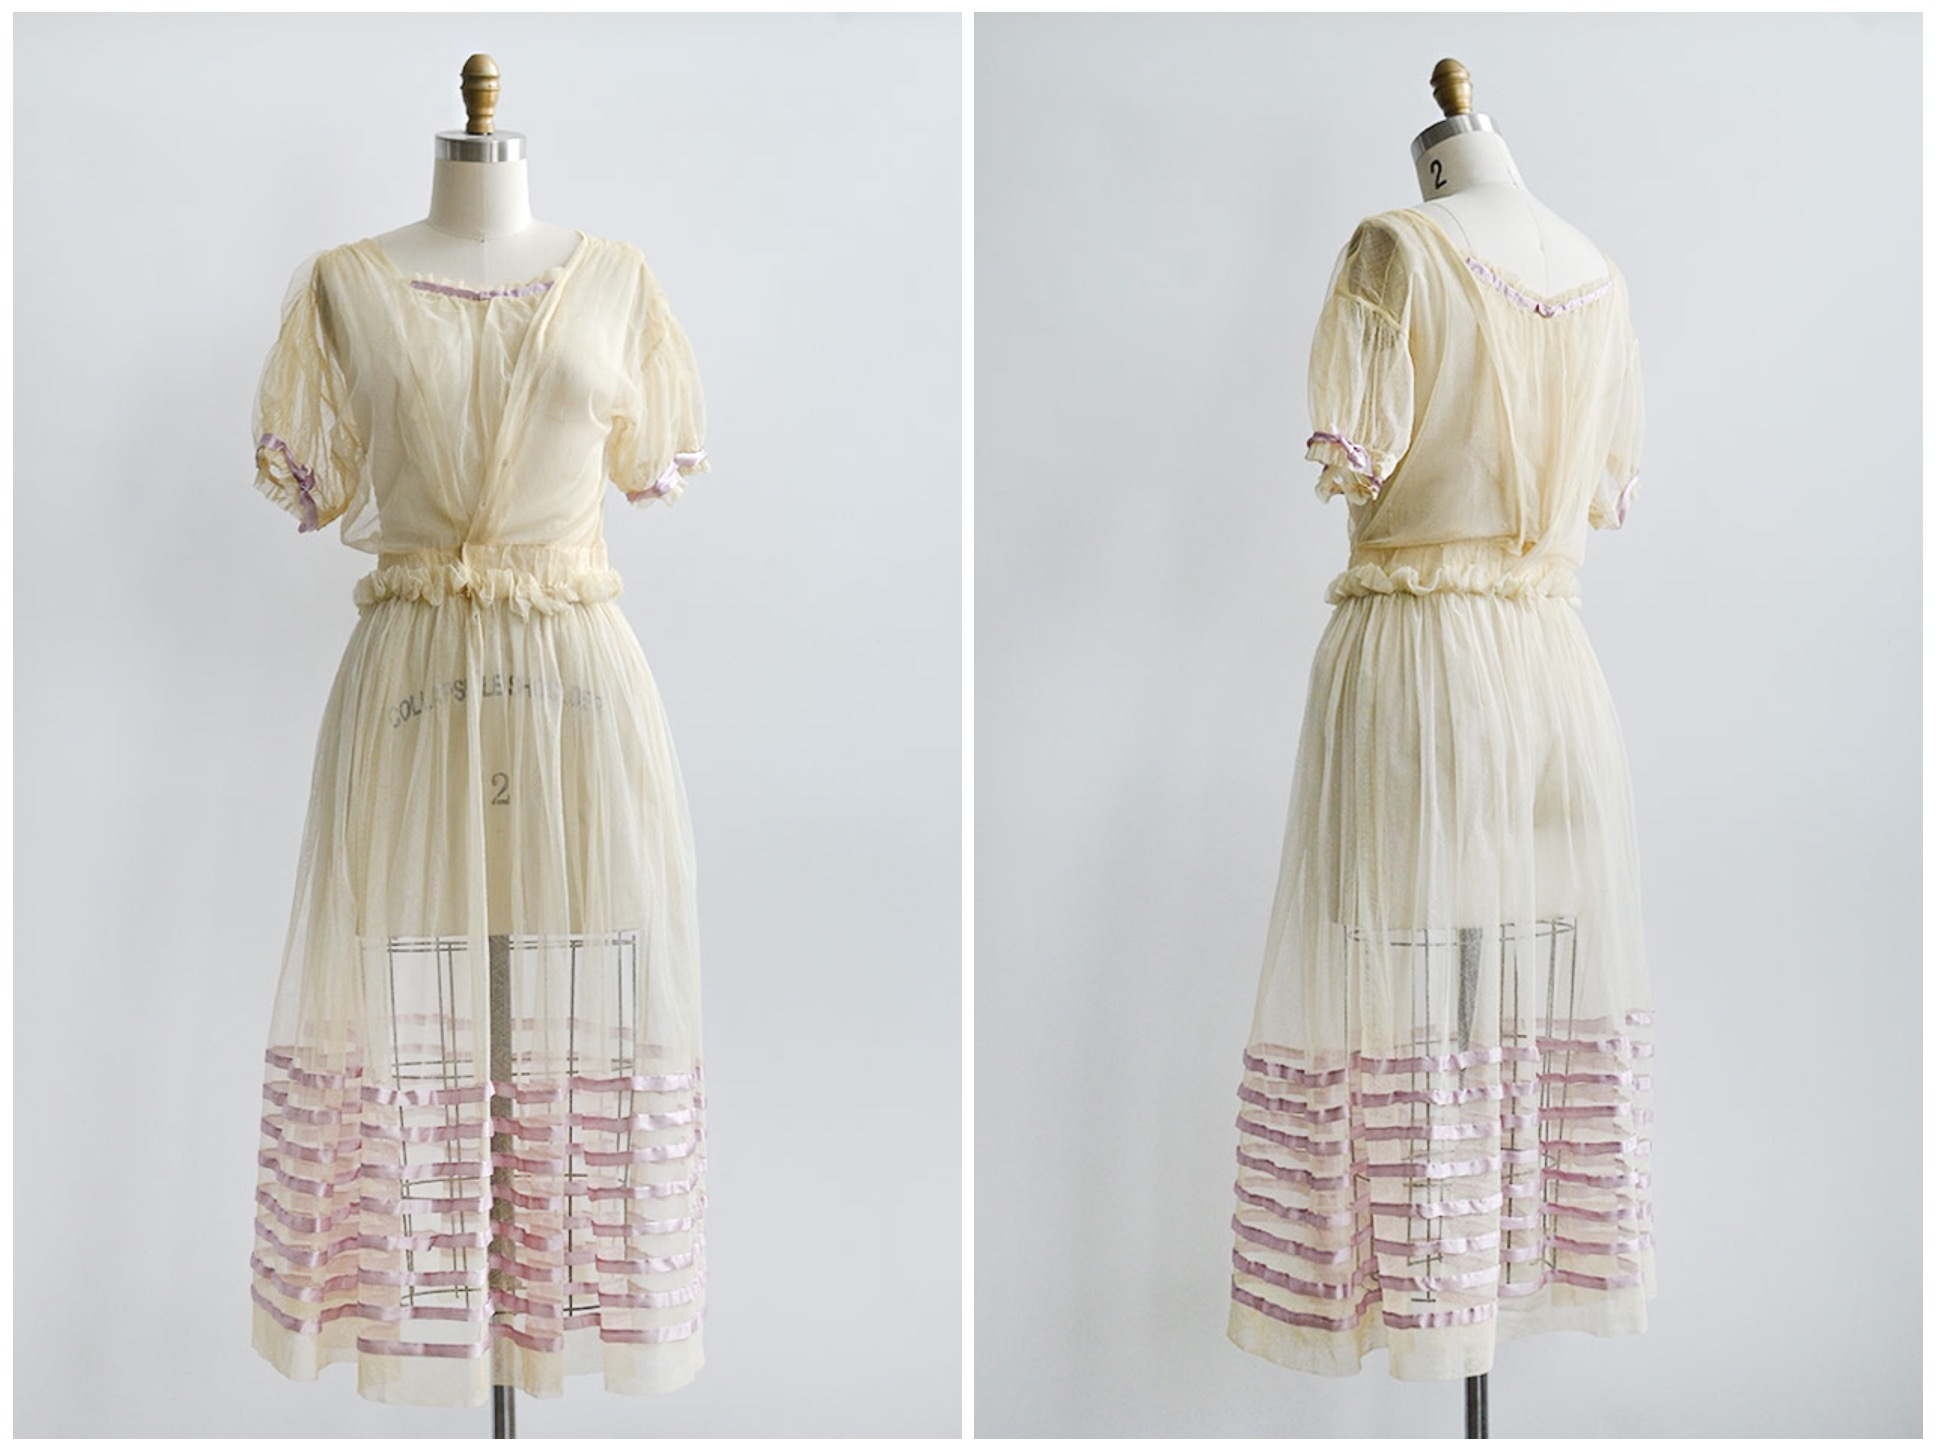 TWEET_antique1910screamtullelavenderribbonsdress